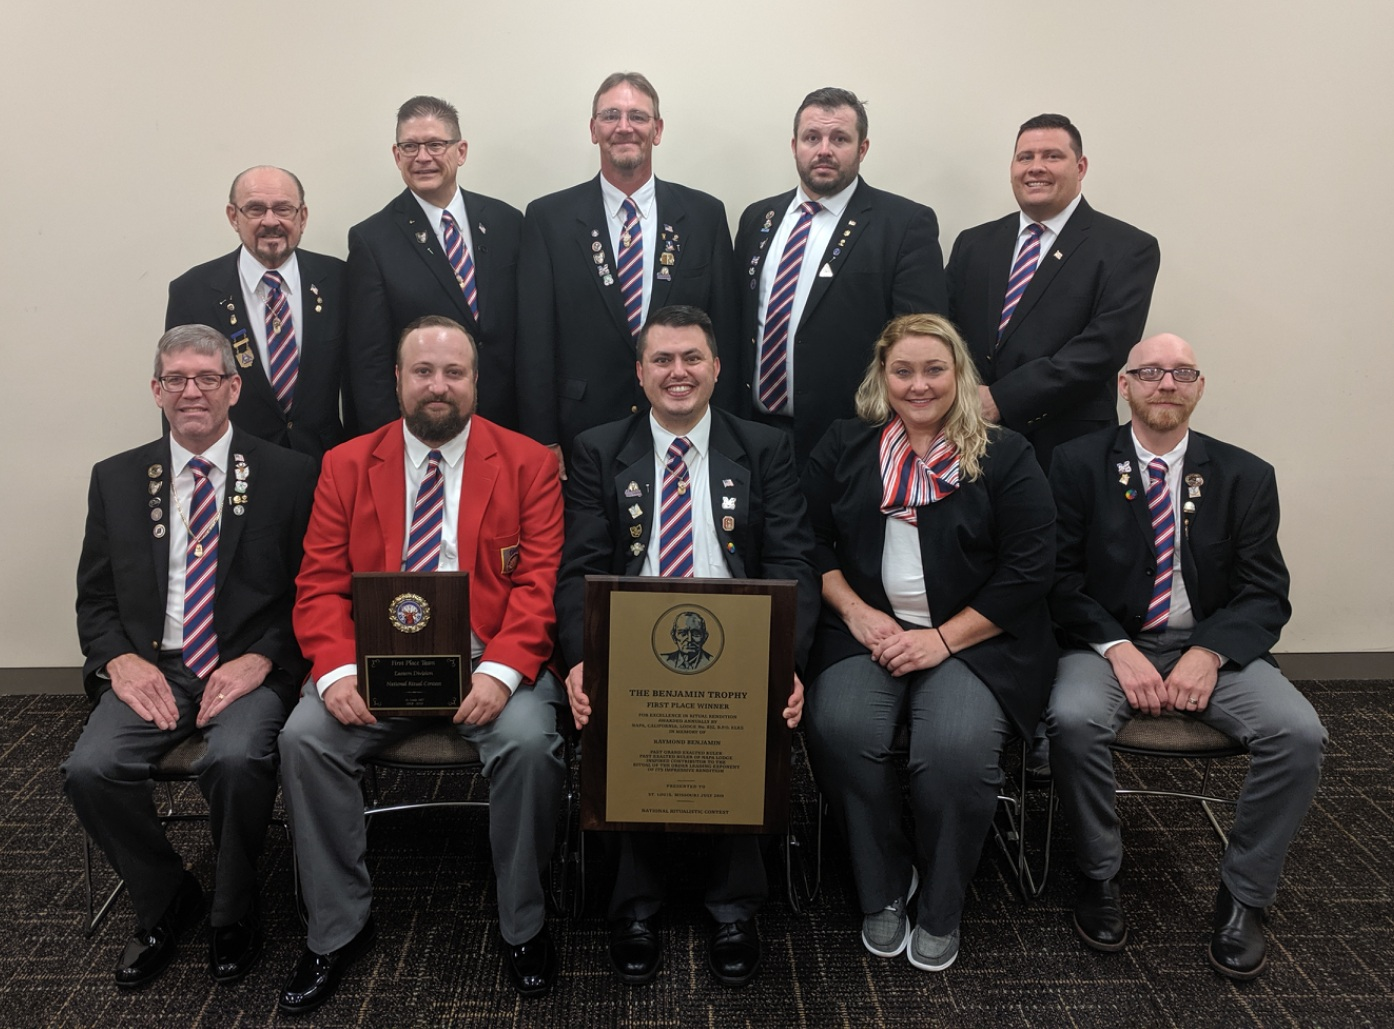 The Kenton Elks Lodge #157 National Champion Ritual Team and their coaches